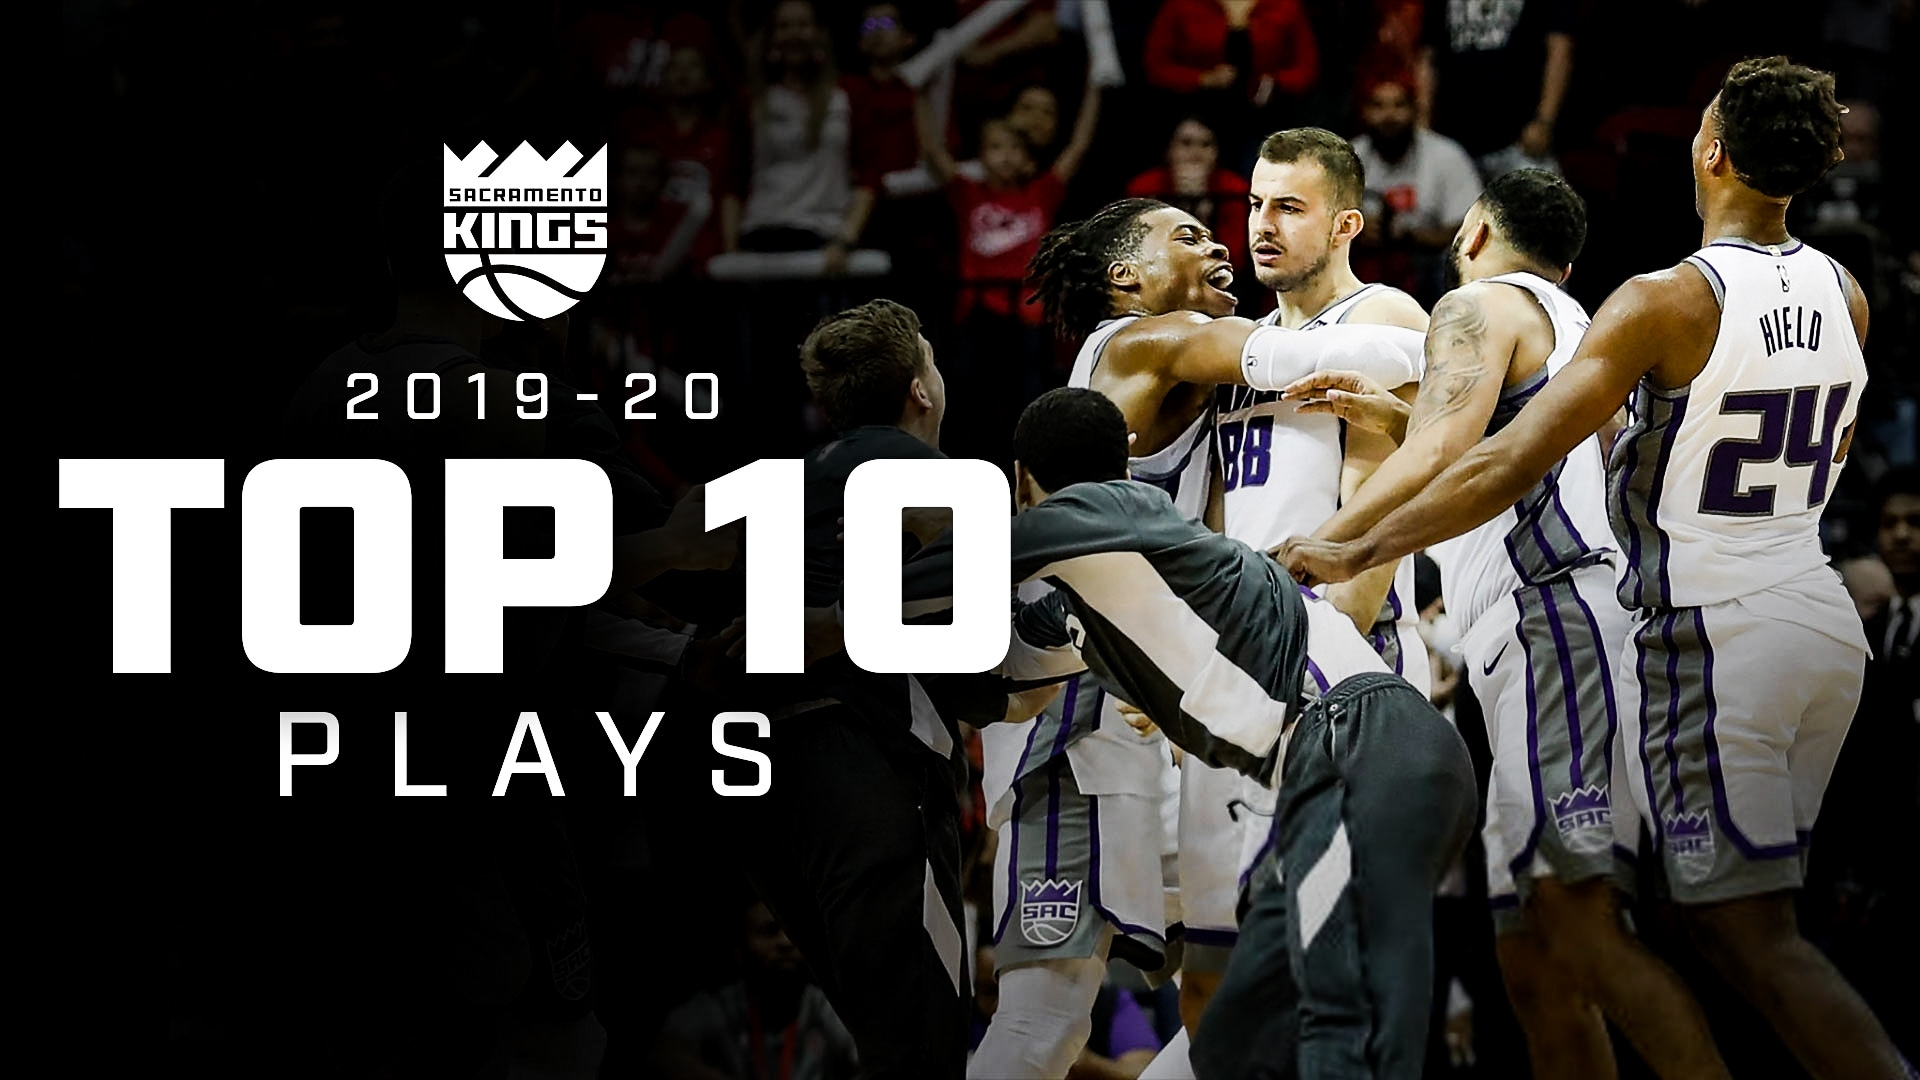 Top 10 Plays of the 2019-20 Season!